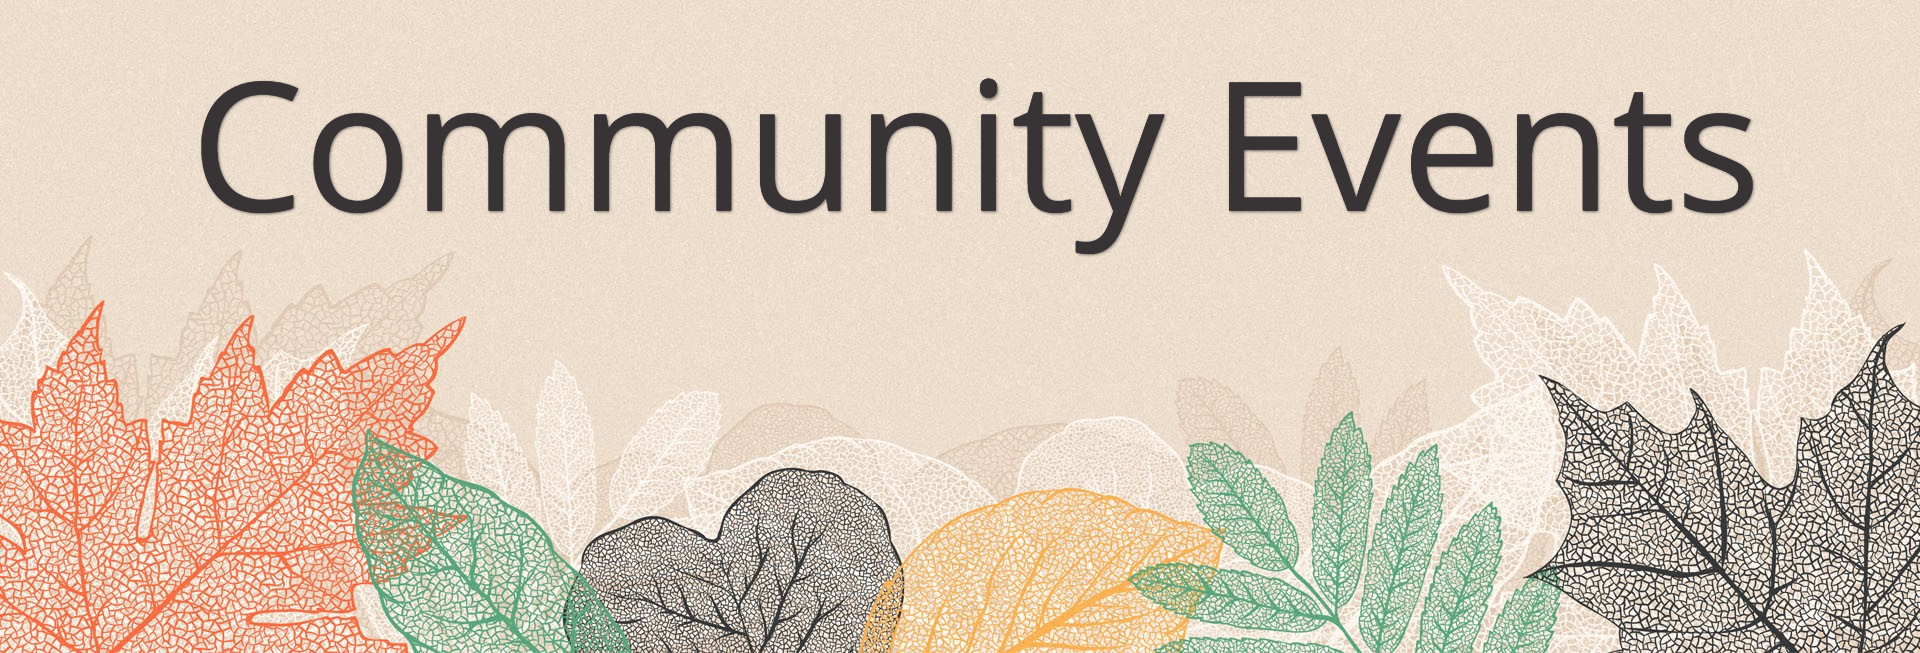 Autumn Festival Church Sermon Website Banner